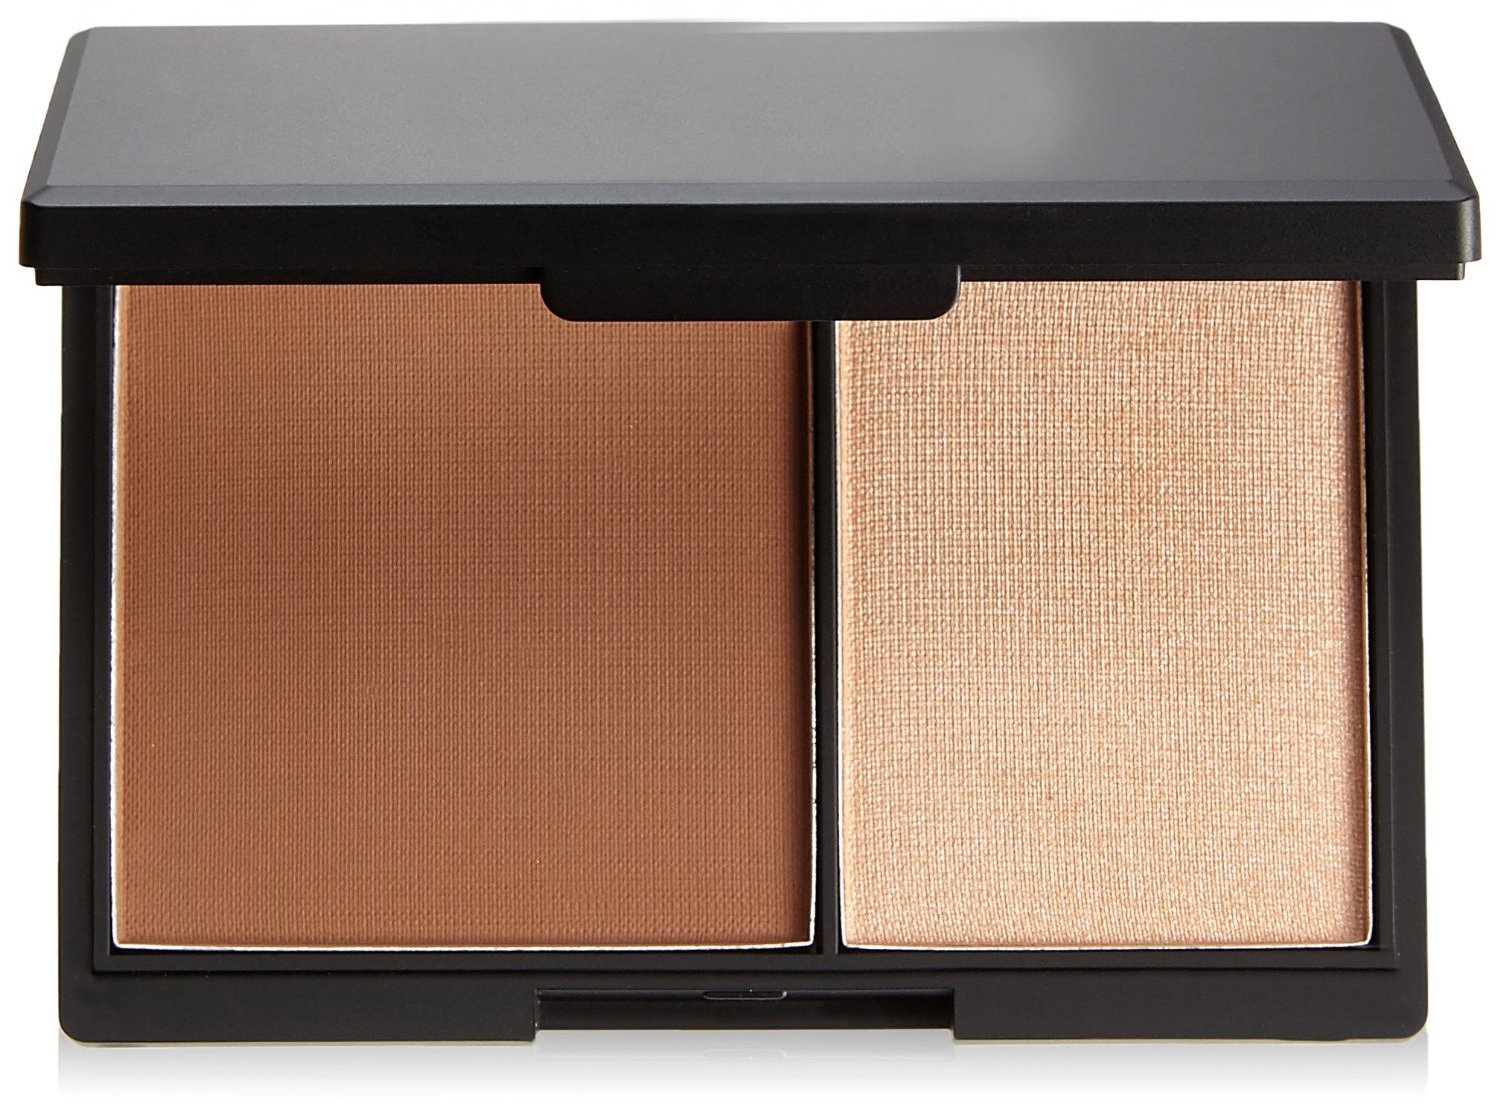 Makeup duo for highlight and contour. Small box with mirror, Medium tone by DELIAWINTERFEL